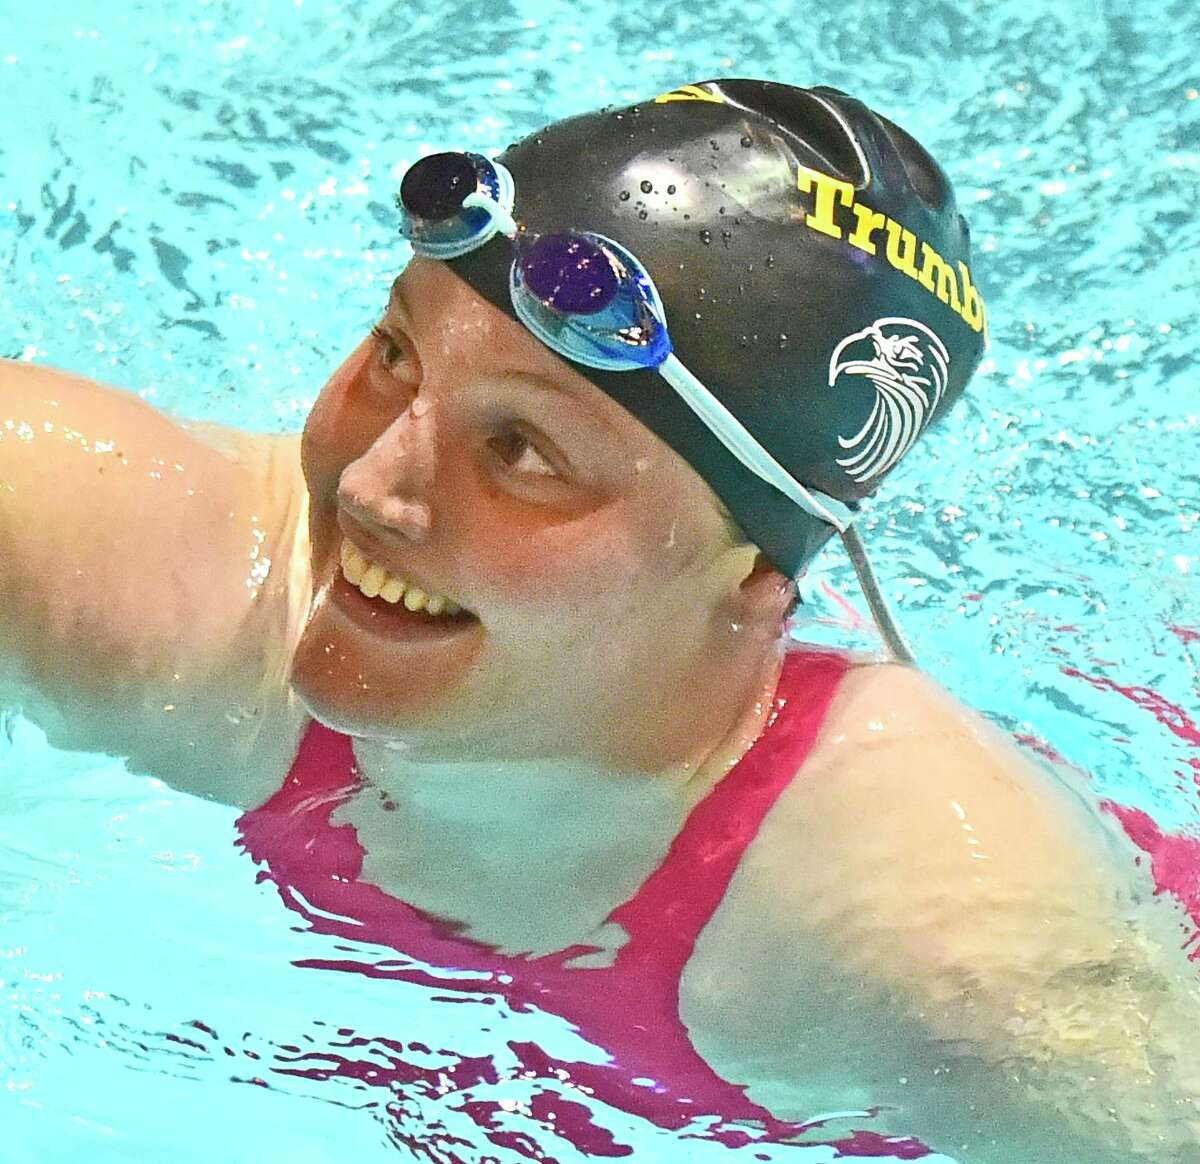 New Haven, Connecticut -Sunday, November 24, 2019: Lauren Walsh of Trumbull H.S. savors victory after winning the fourth heat of the Girls 100 Yard breast stroke during the CIAC State Open Girls Swimming Championship Sunday at Yale University in New Haven.